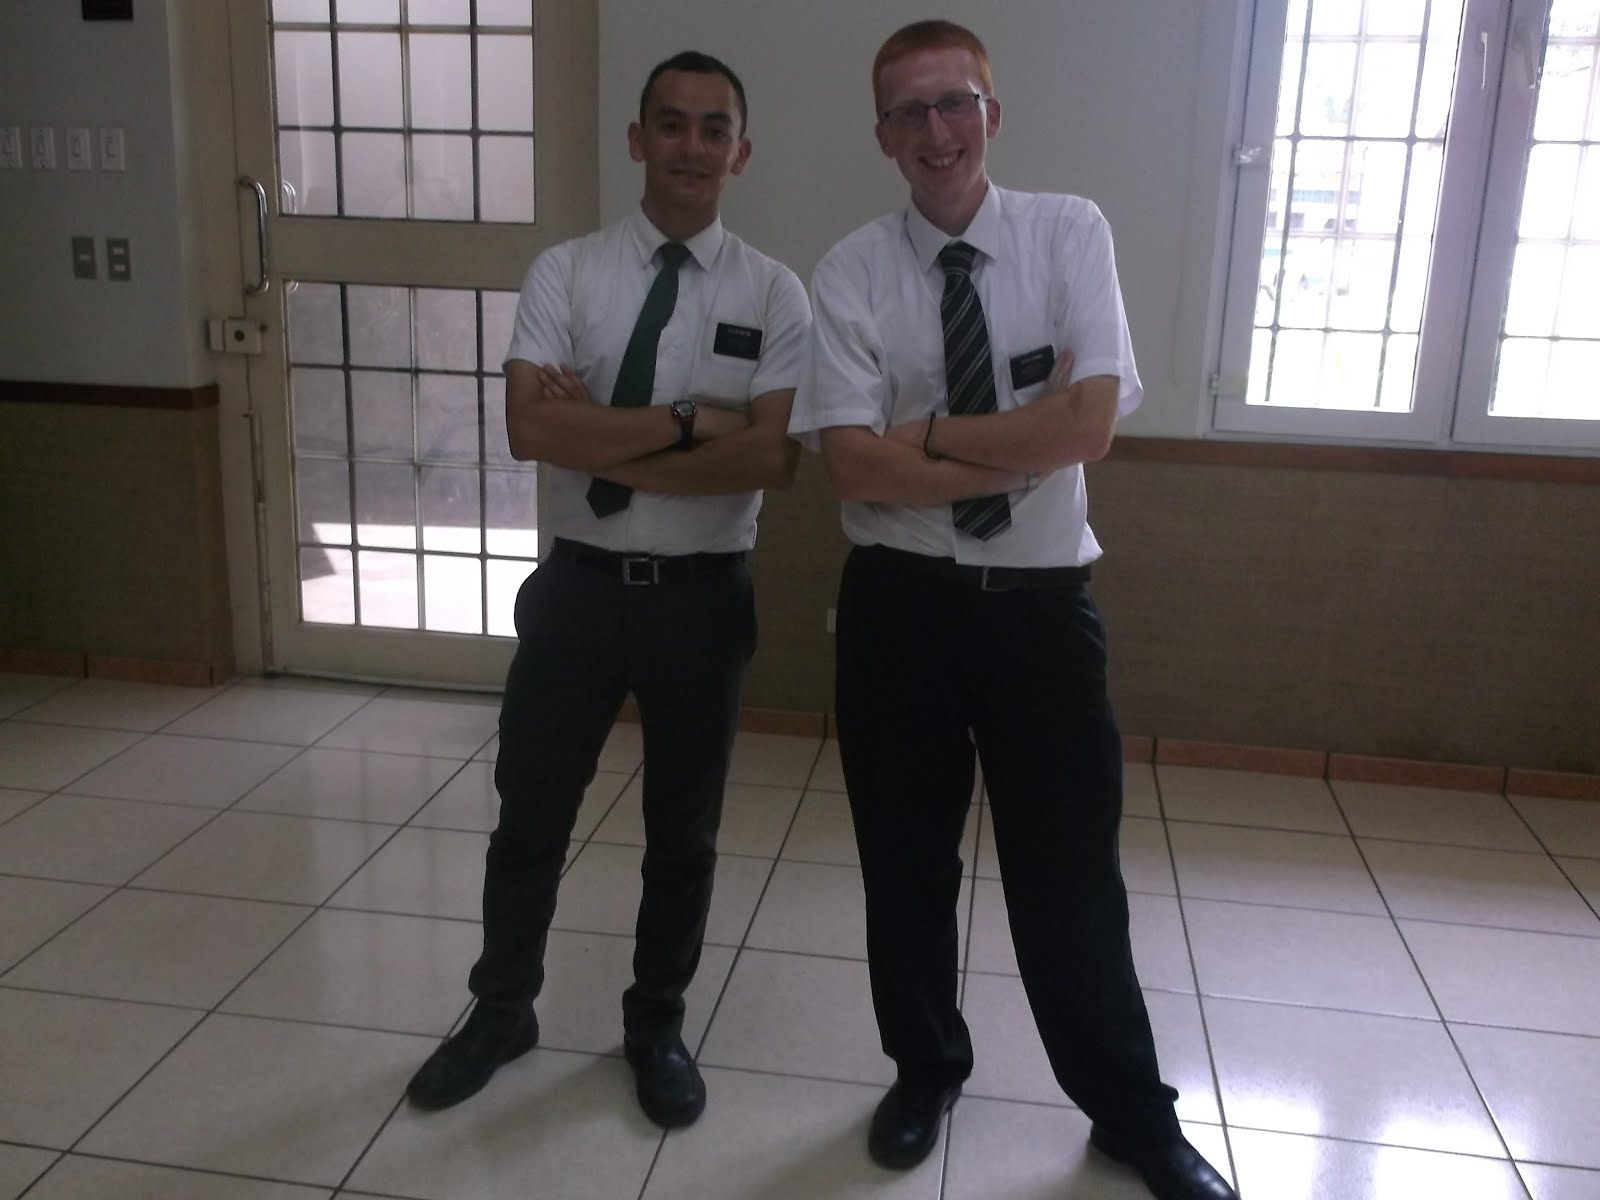 Elder Haynie and Elder Simms